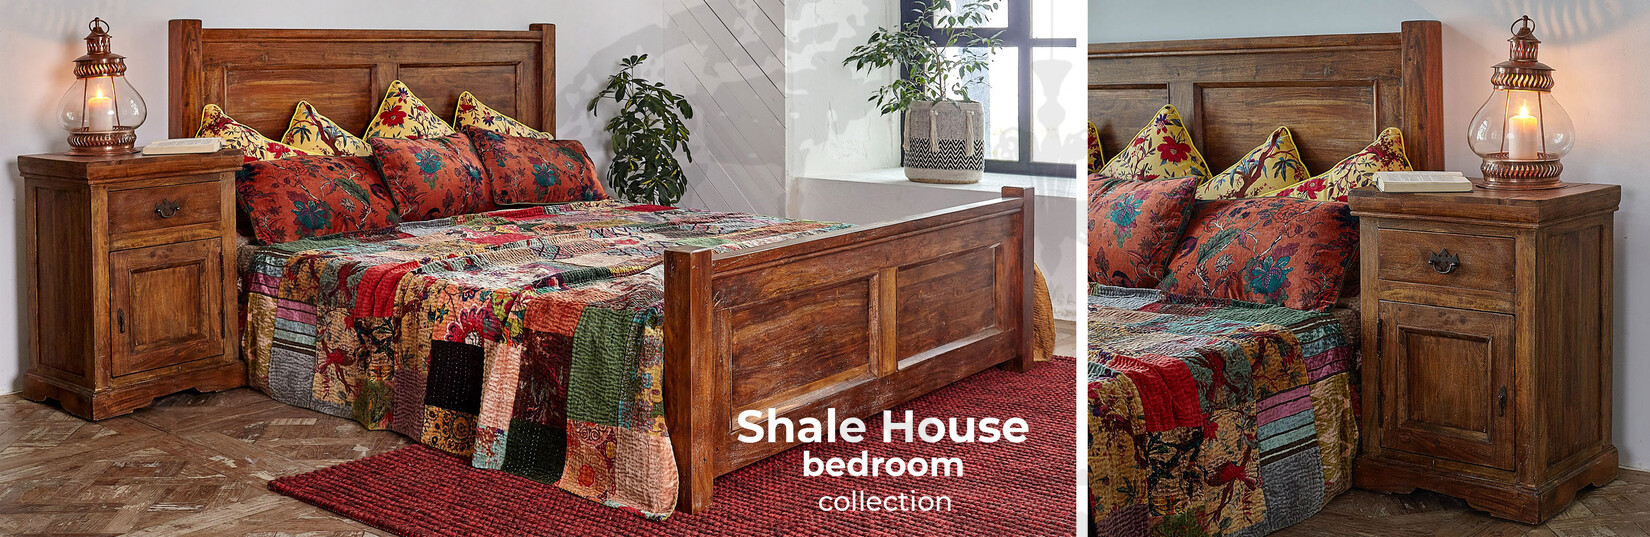 Shale House bedroom